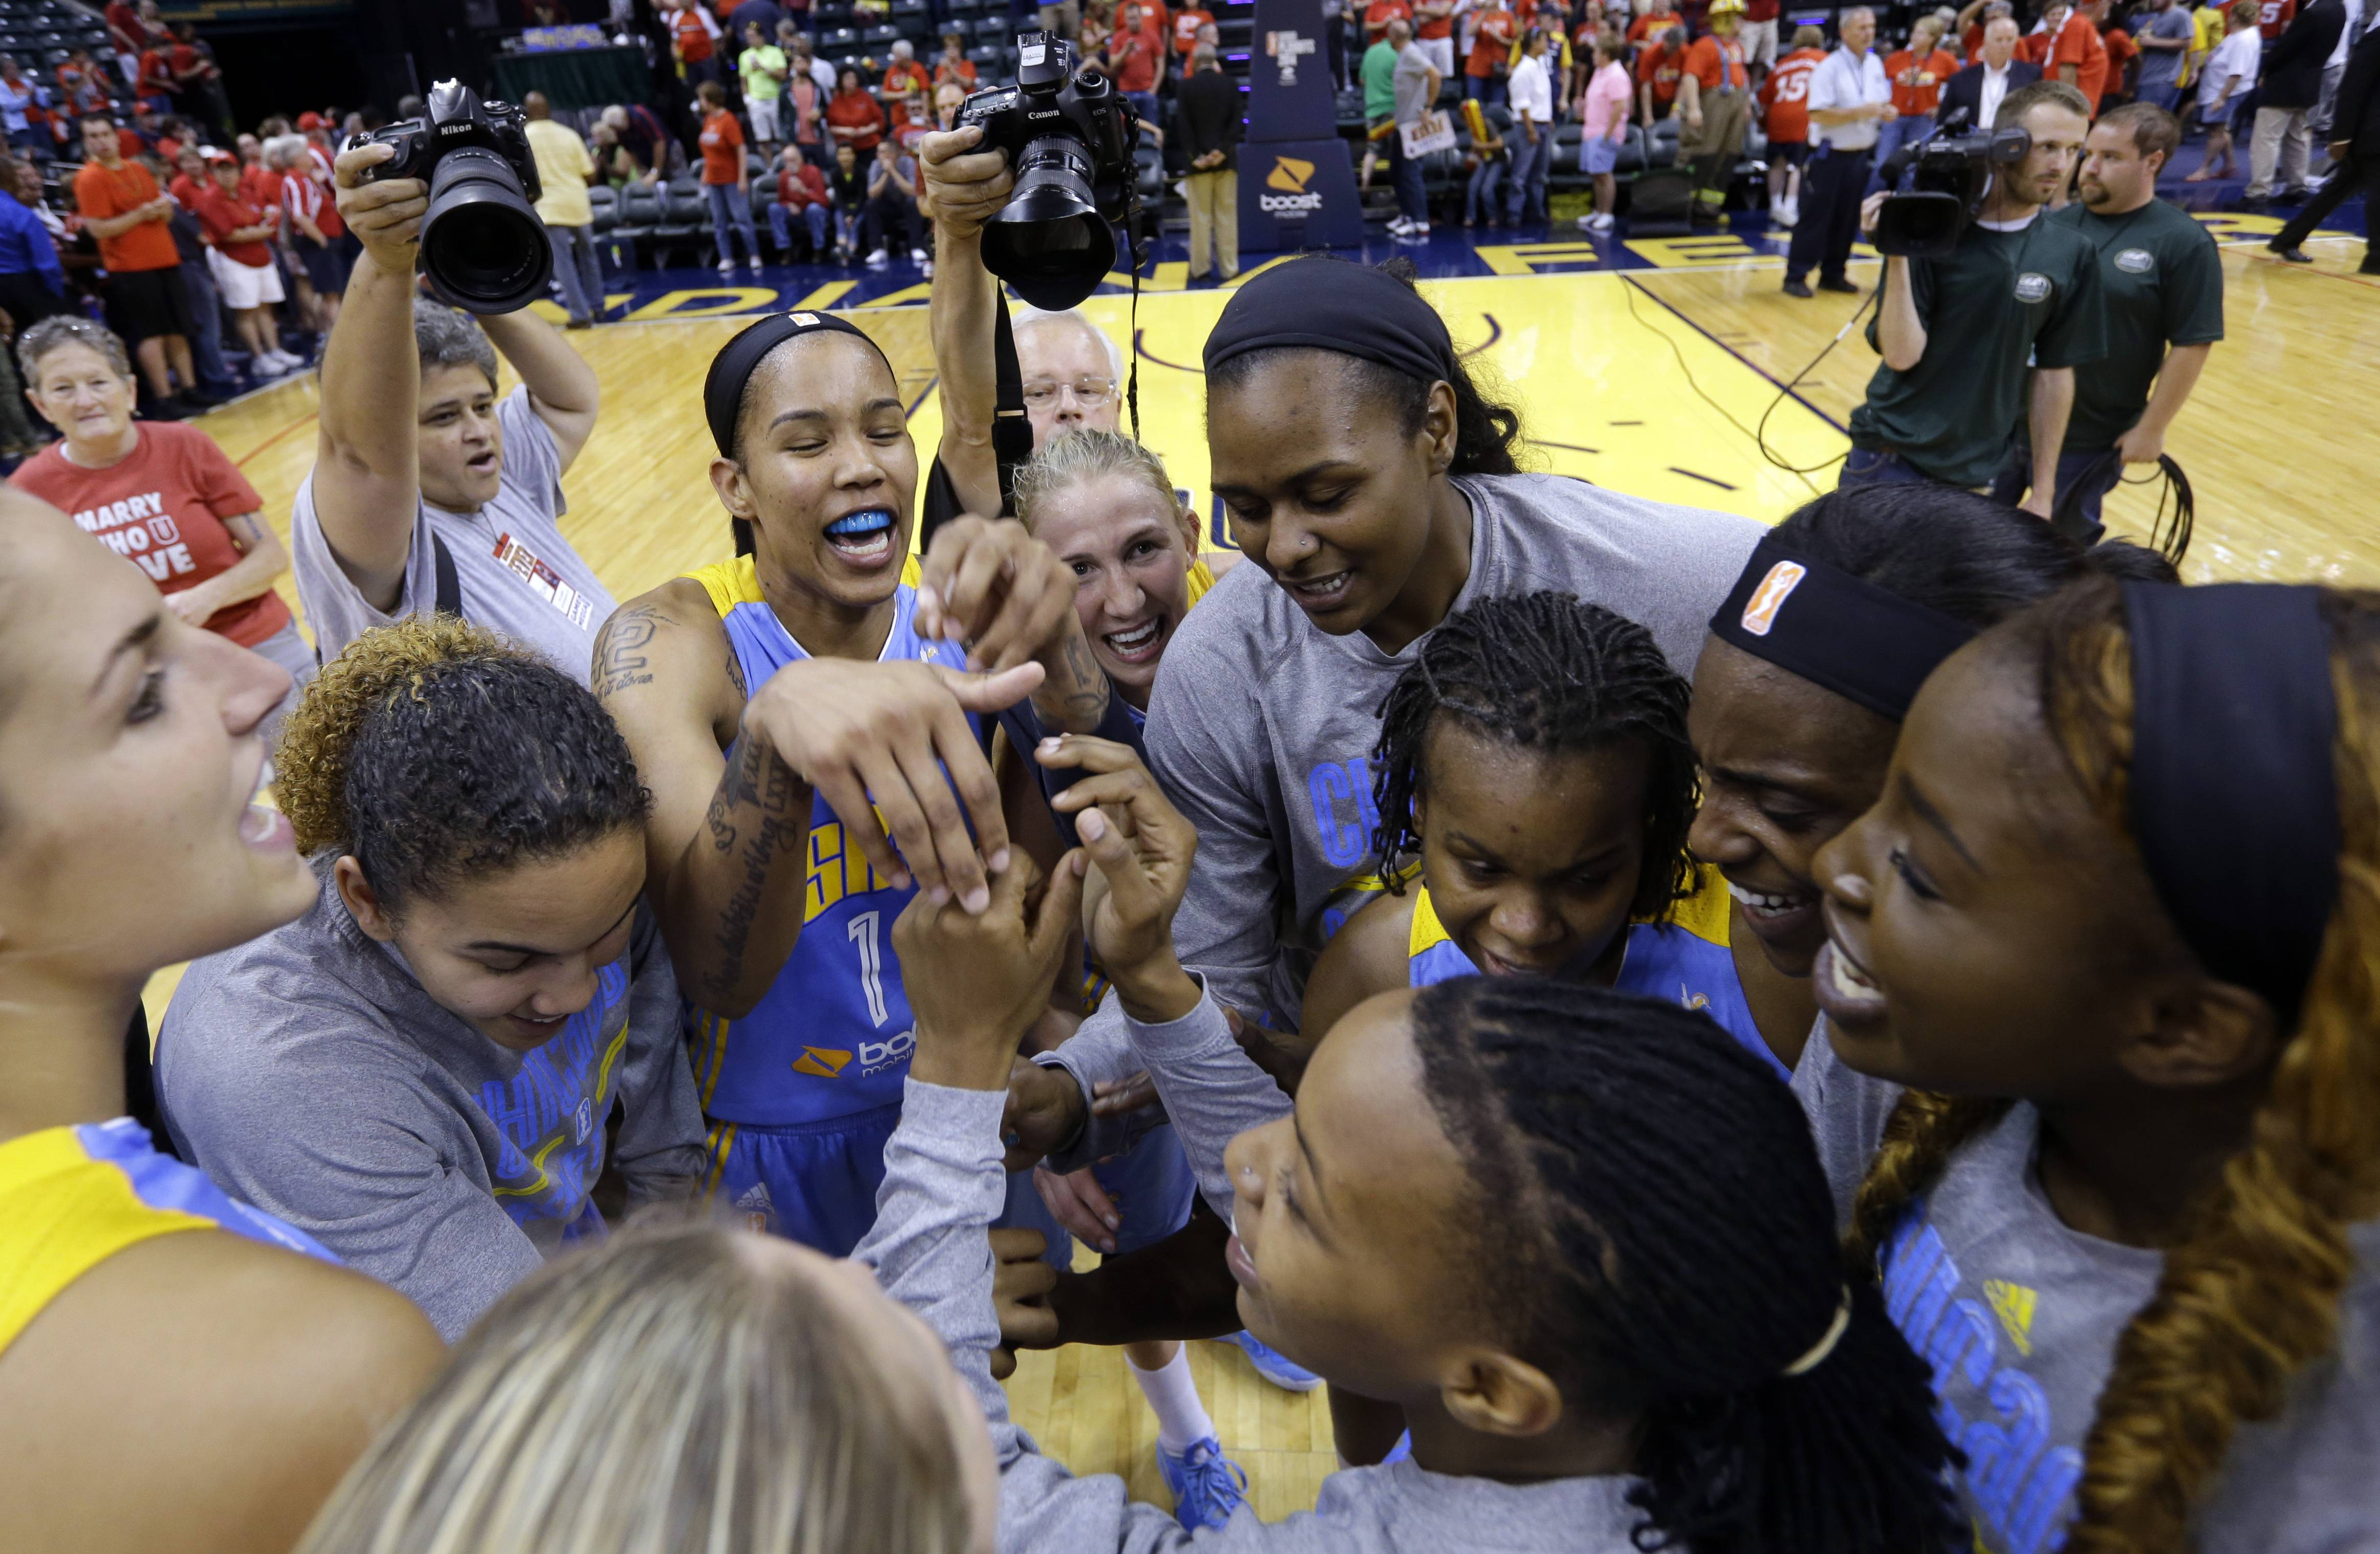 The Chicago Sky celebrates after defeating the Indiana Fever 75-62 in Game 3 of the WNBA Eastern Conference basketball finals Wednesday in Indianapolis. The Sky to advance to the WNBA Finals.